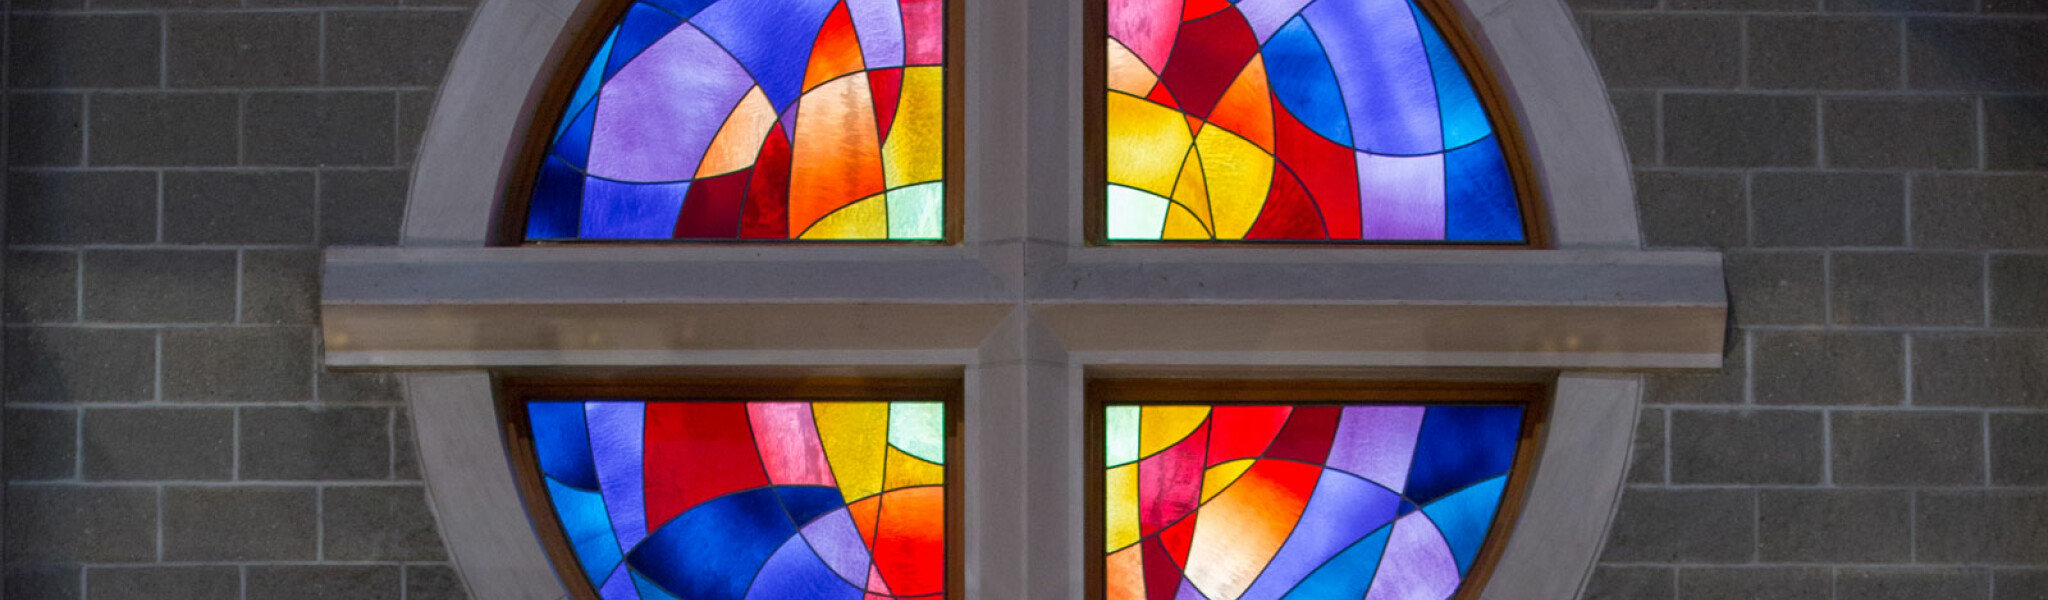 Events | Cornerstone Lutheran Church | Cornerstone Lutheran Church